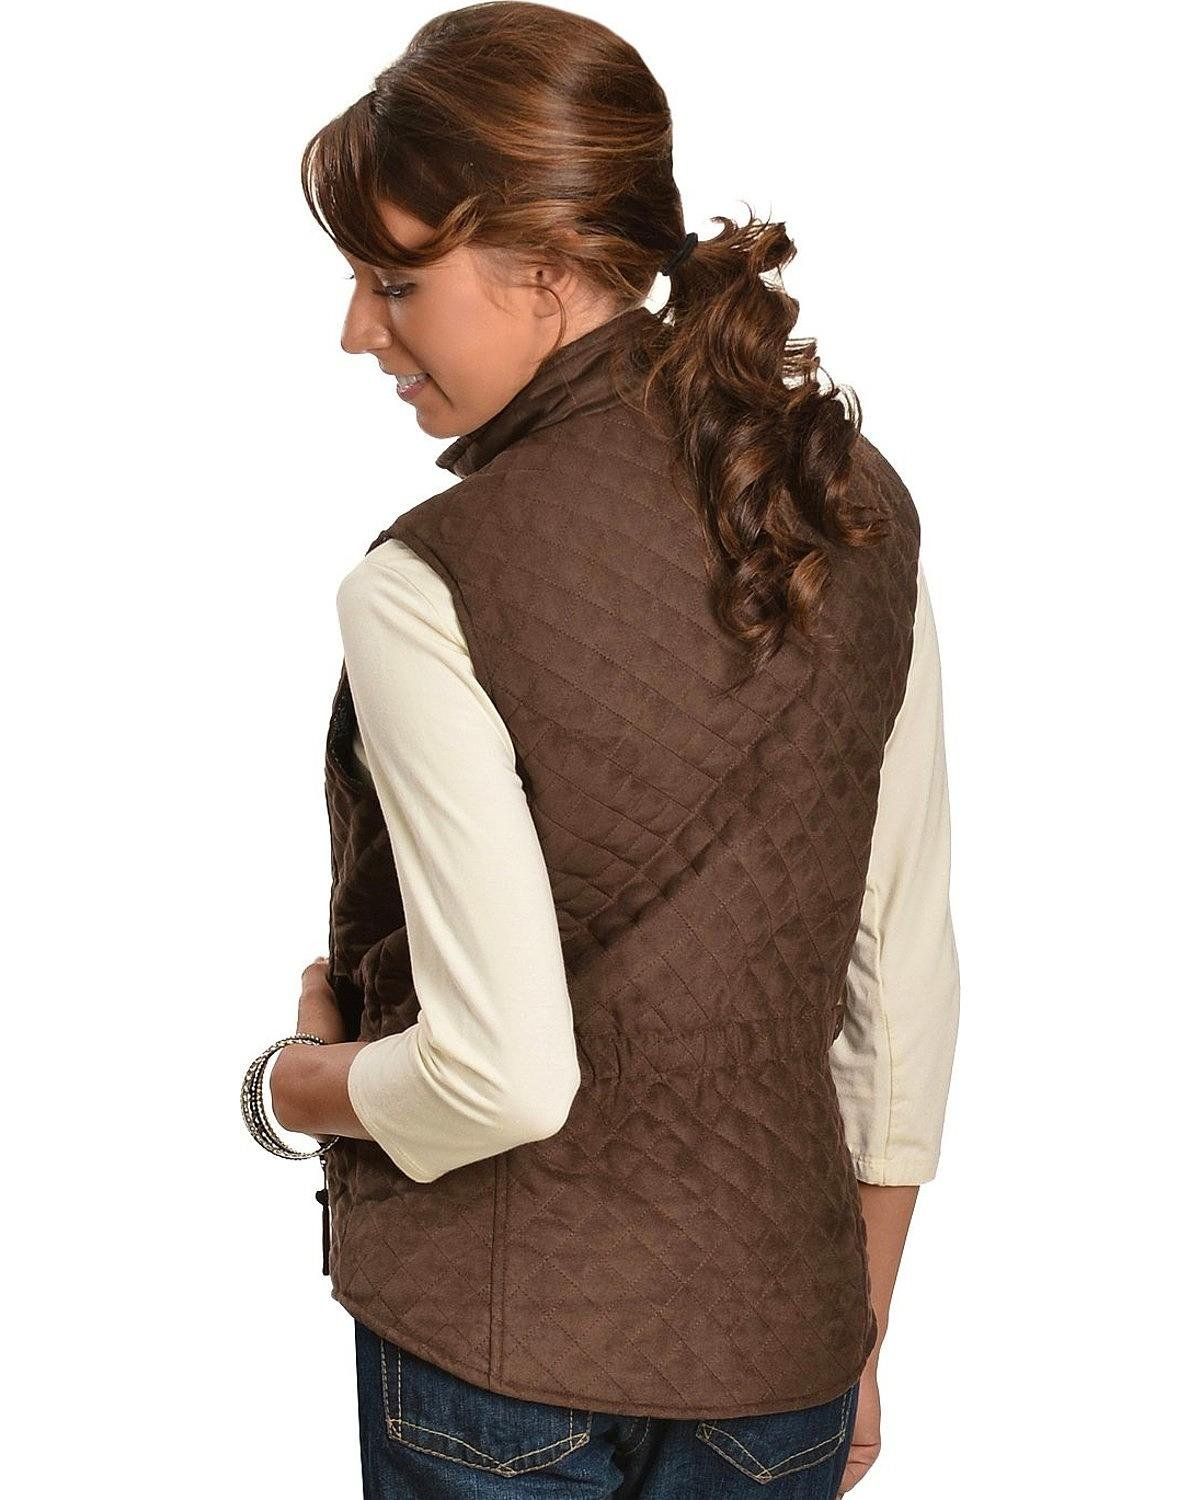 STOCK 2000213114 Outback Trading Grand Prix Quilted Vest OUTBACK TRADING CO